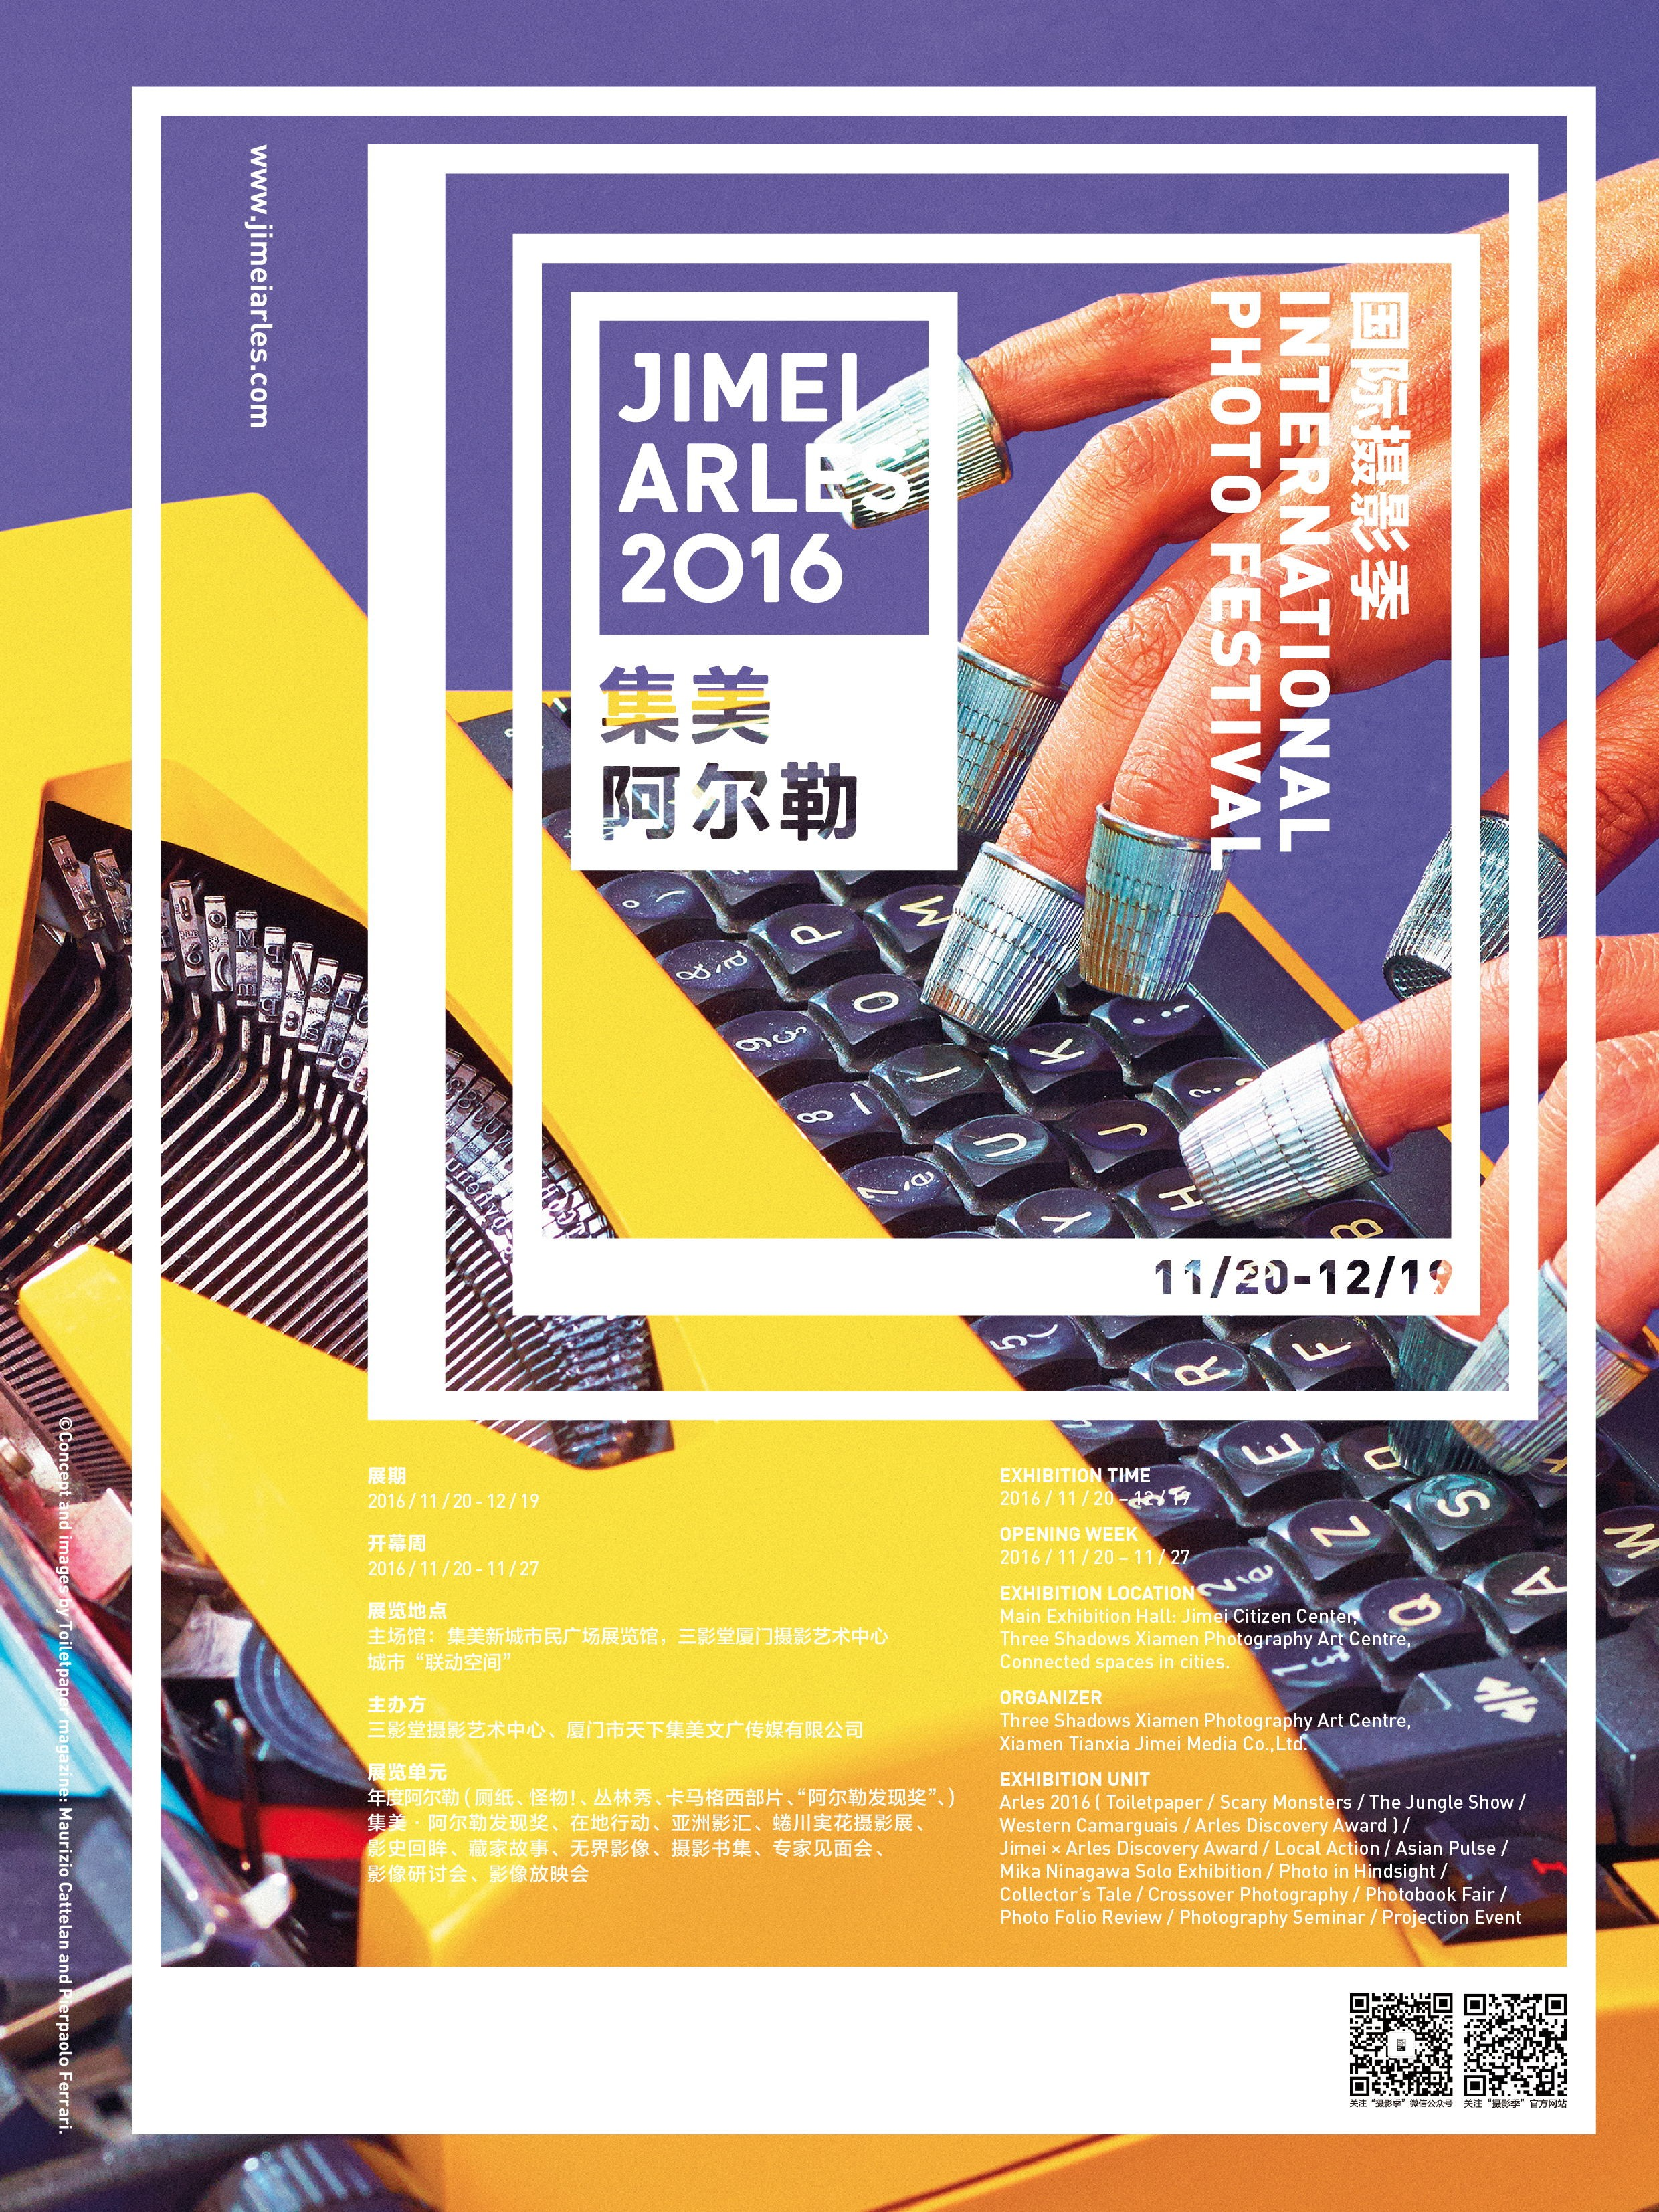 Jimei x arles 2016 international photo festival la for Chambre de commerce francaise en chine